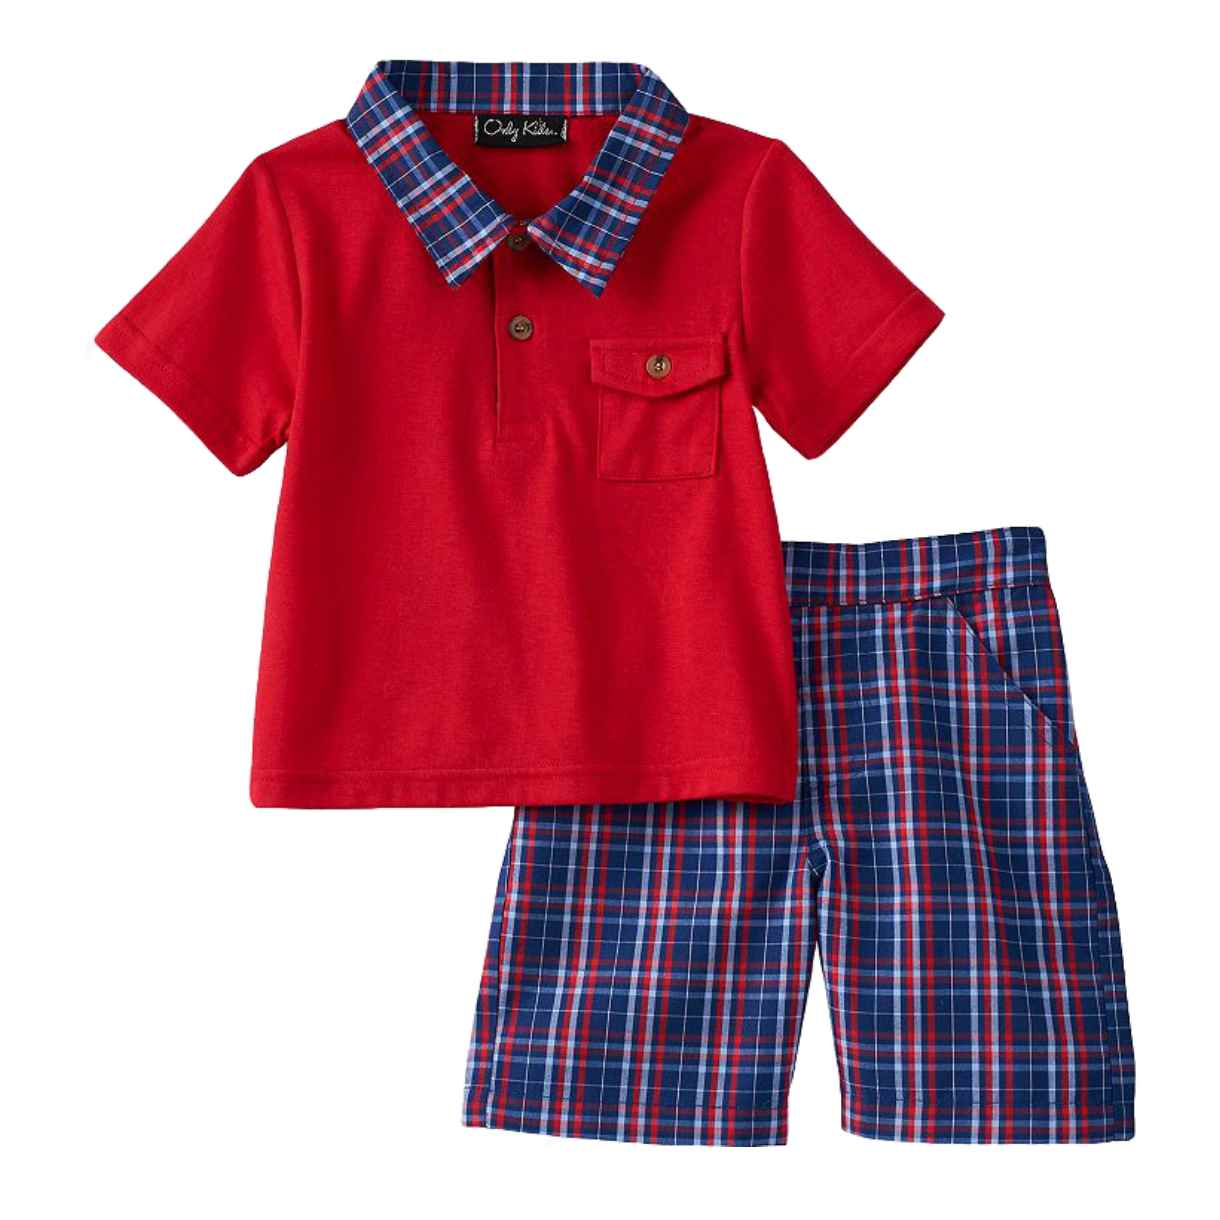 Only Kids Infant Boys 2 Piece Red Polo T-Shirt & Blue Pla...